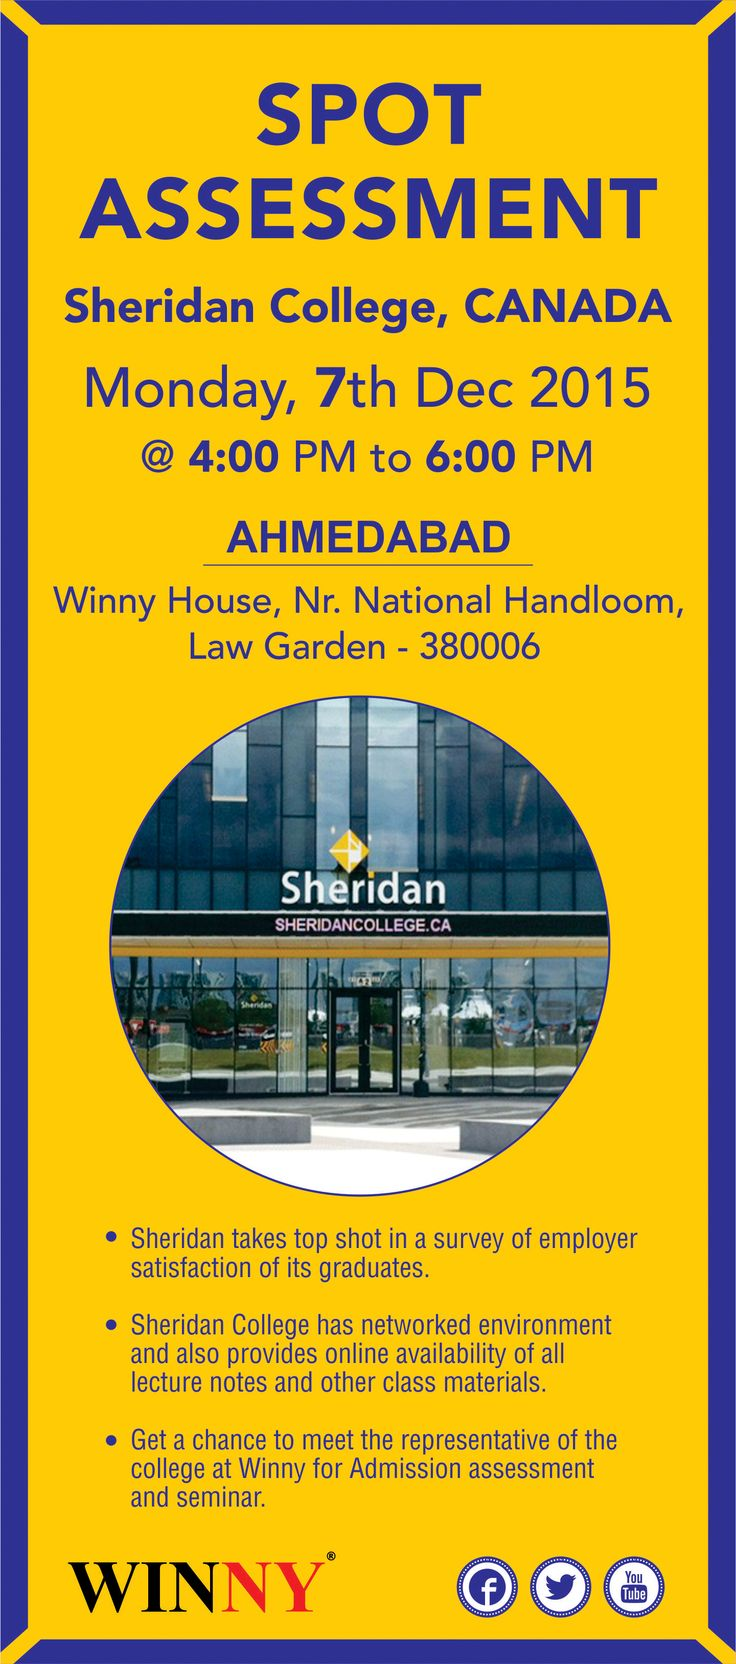 Sheridan College Want to Study in #Canada?- Meet the Representative in #Ahmedabad  Monday, 07 Dec 2015 04:00 PM to 6:00 PM To Book your Appointment Please Call +91-922 792 2724